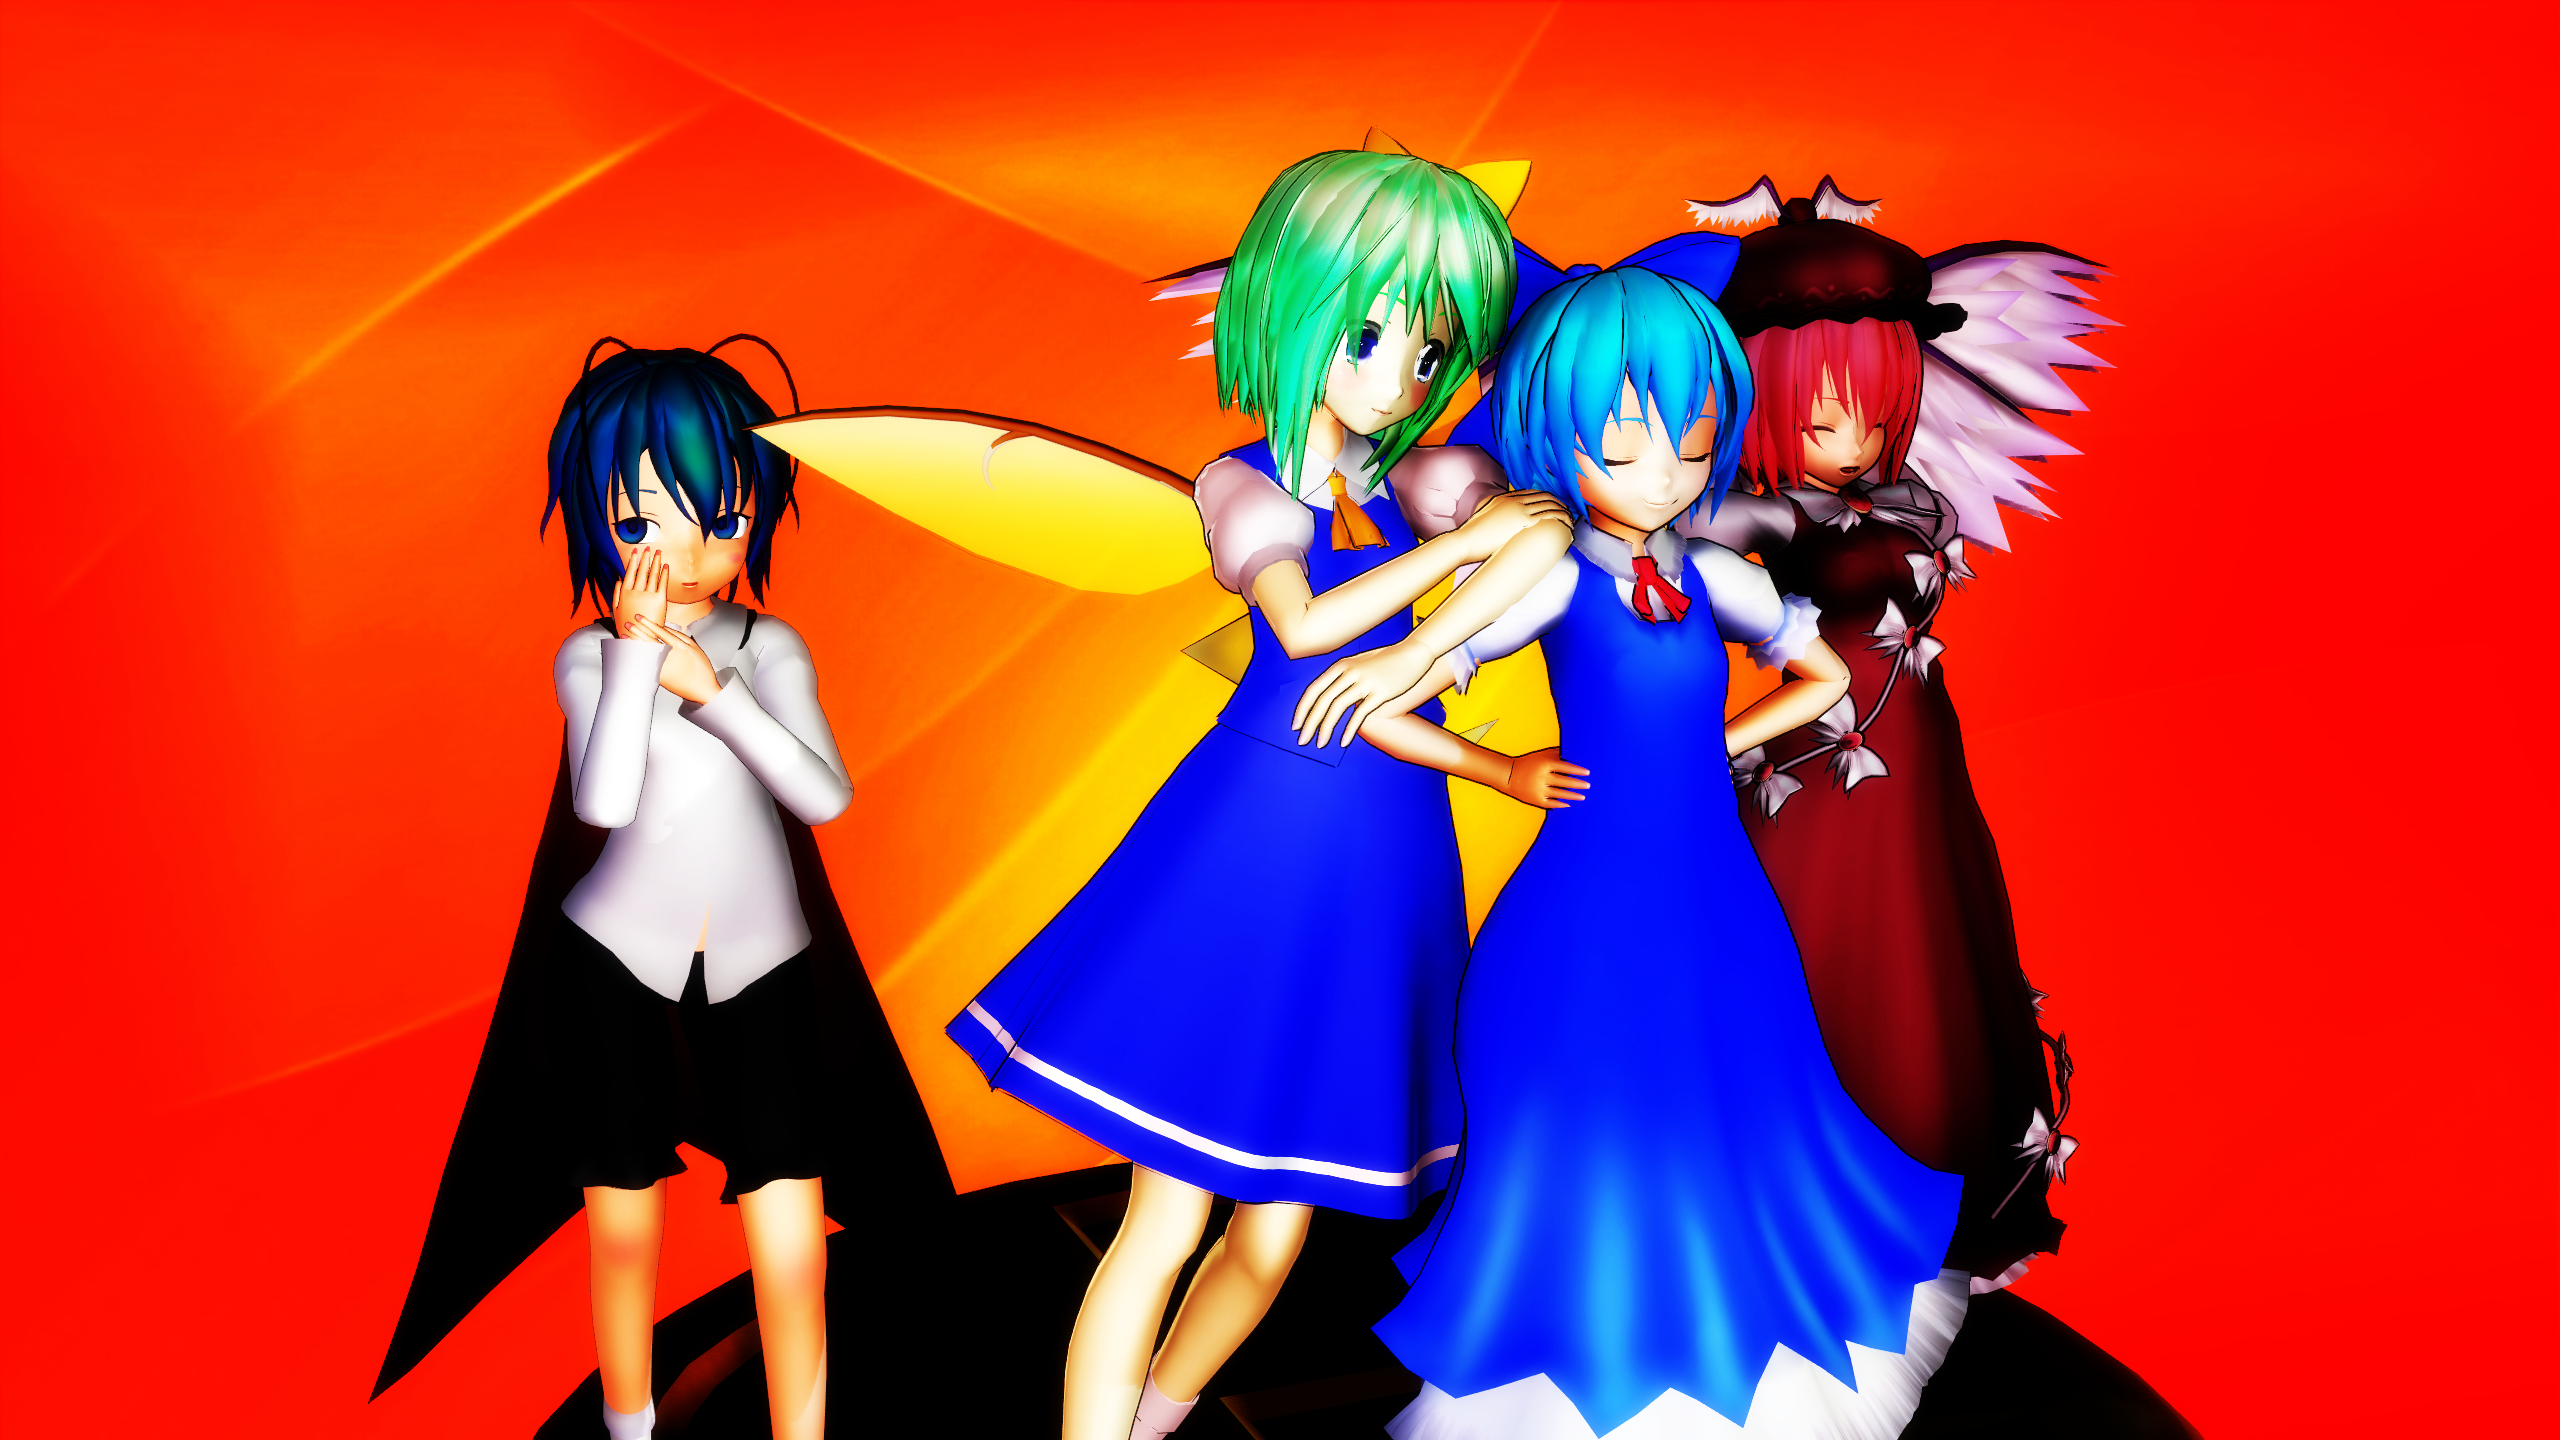 Smash Bros Trophy Team 9 2560x1440 by headstert